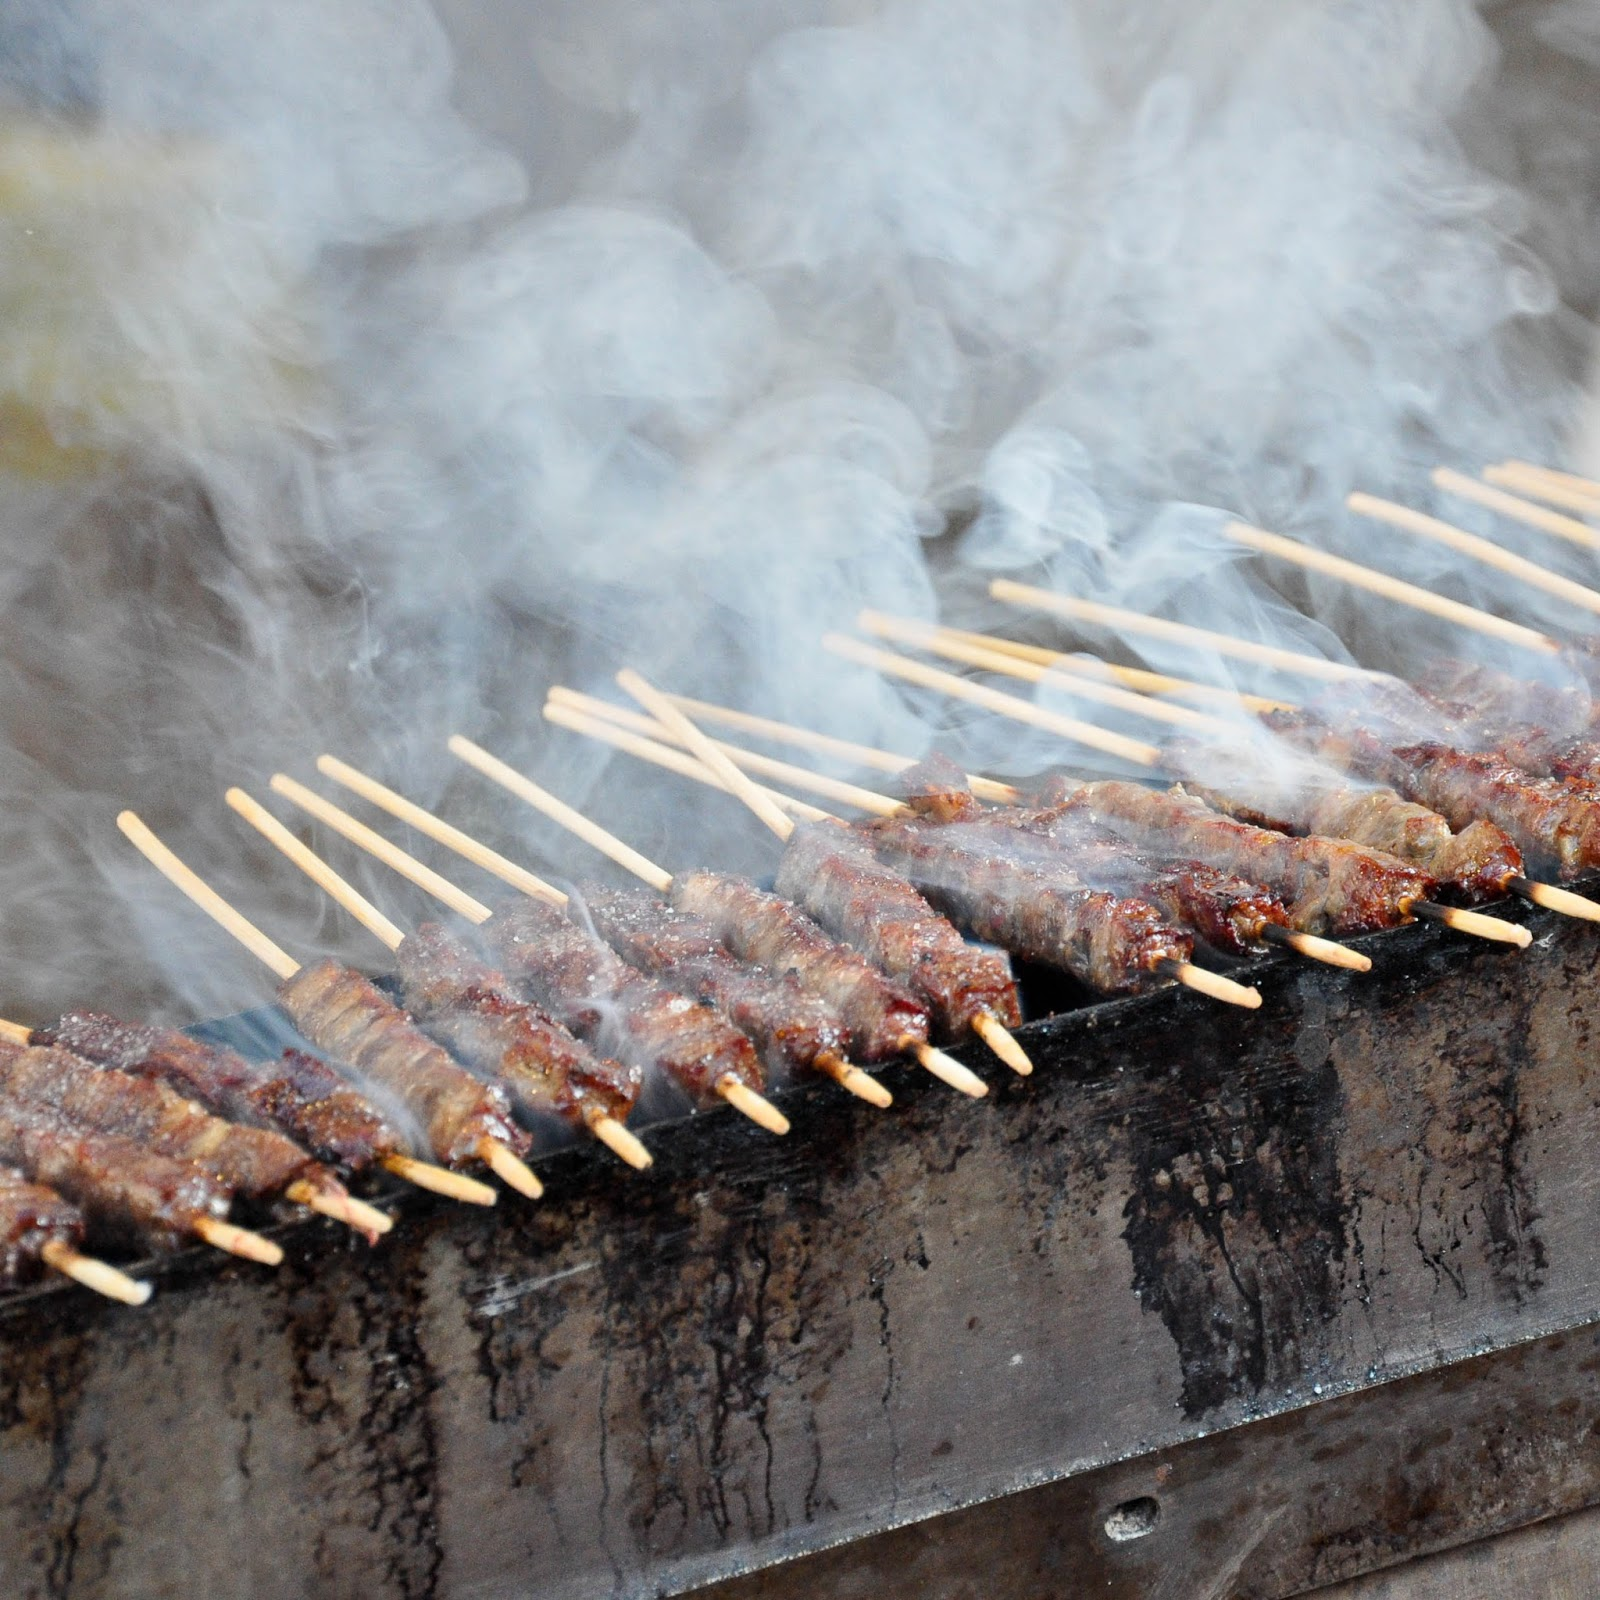 Arrosticini Thienesi roasted on coals, Thiene, Veneto, Italy